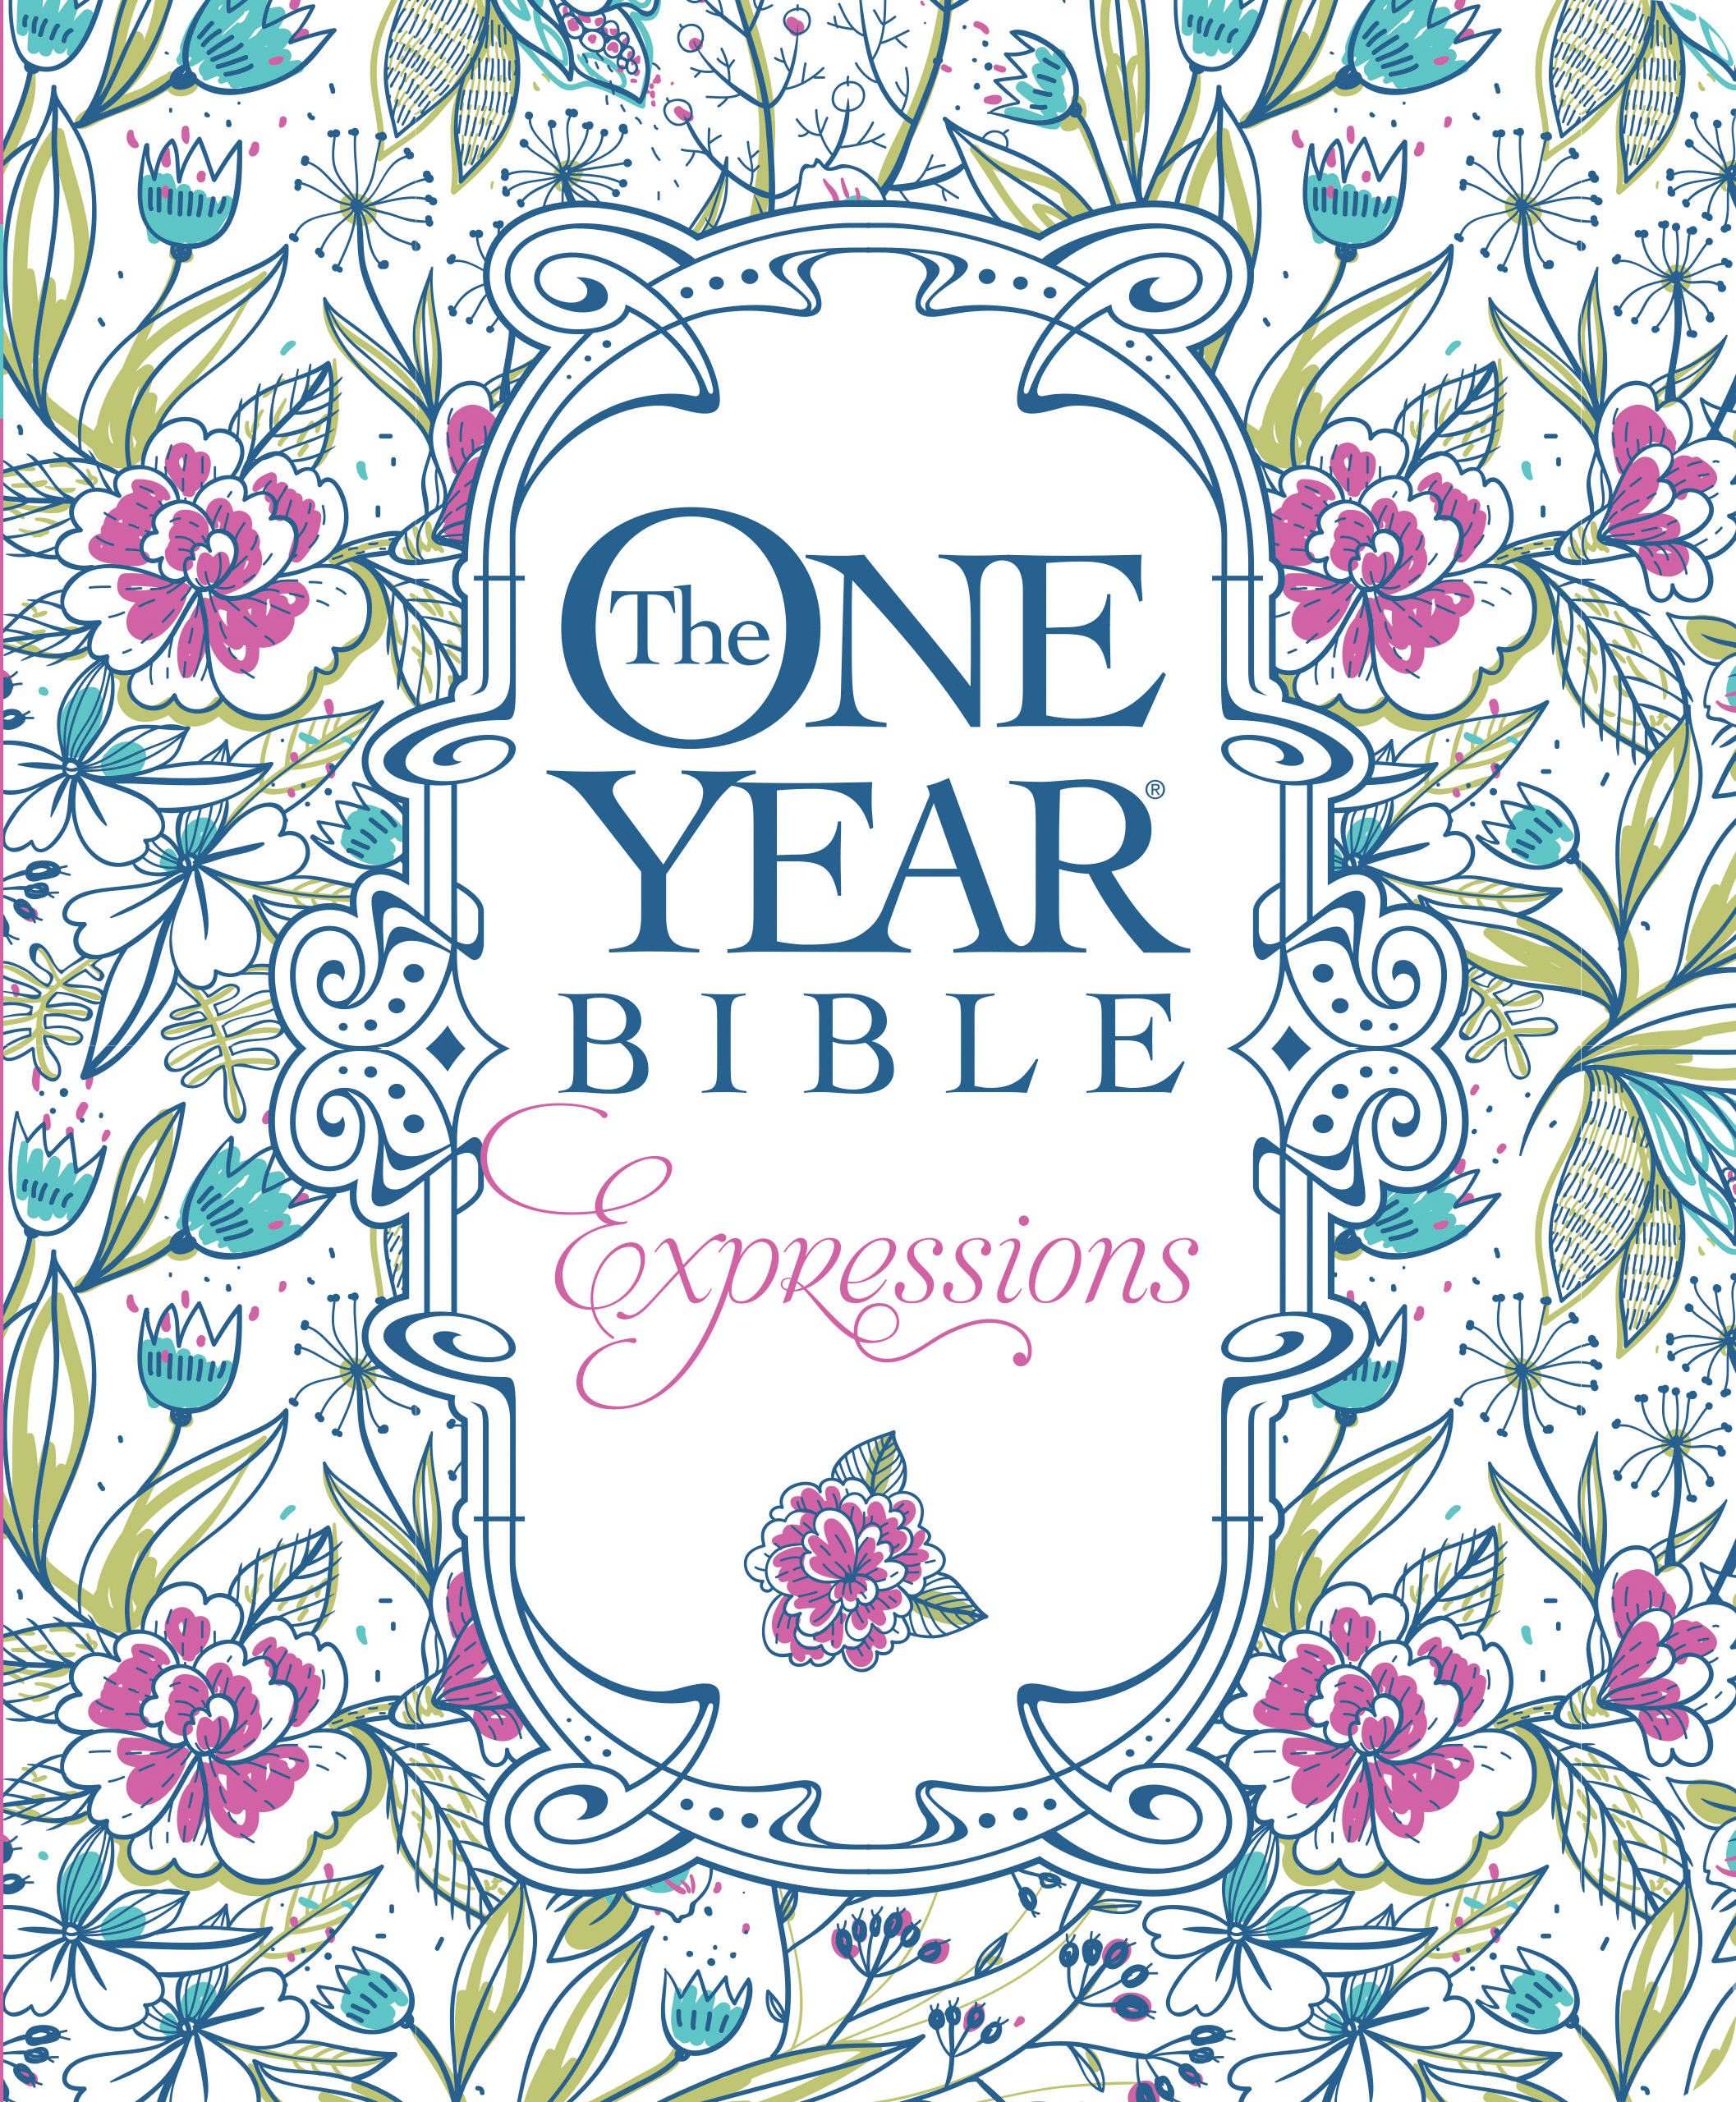 tyndale com stories new ways to explore the bible with living